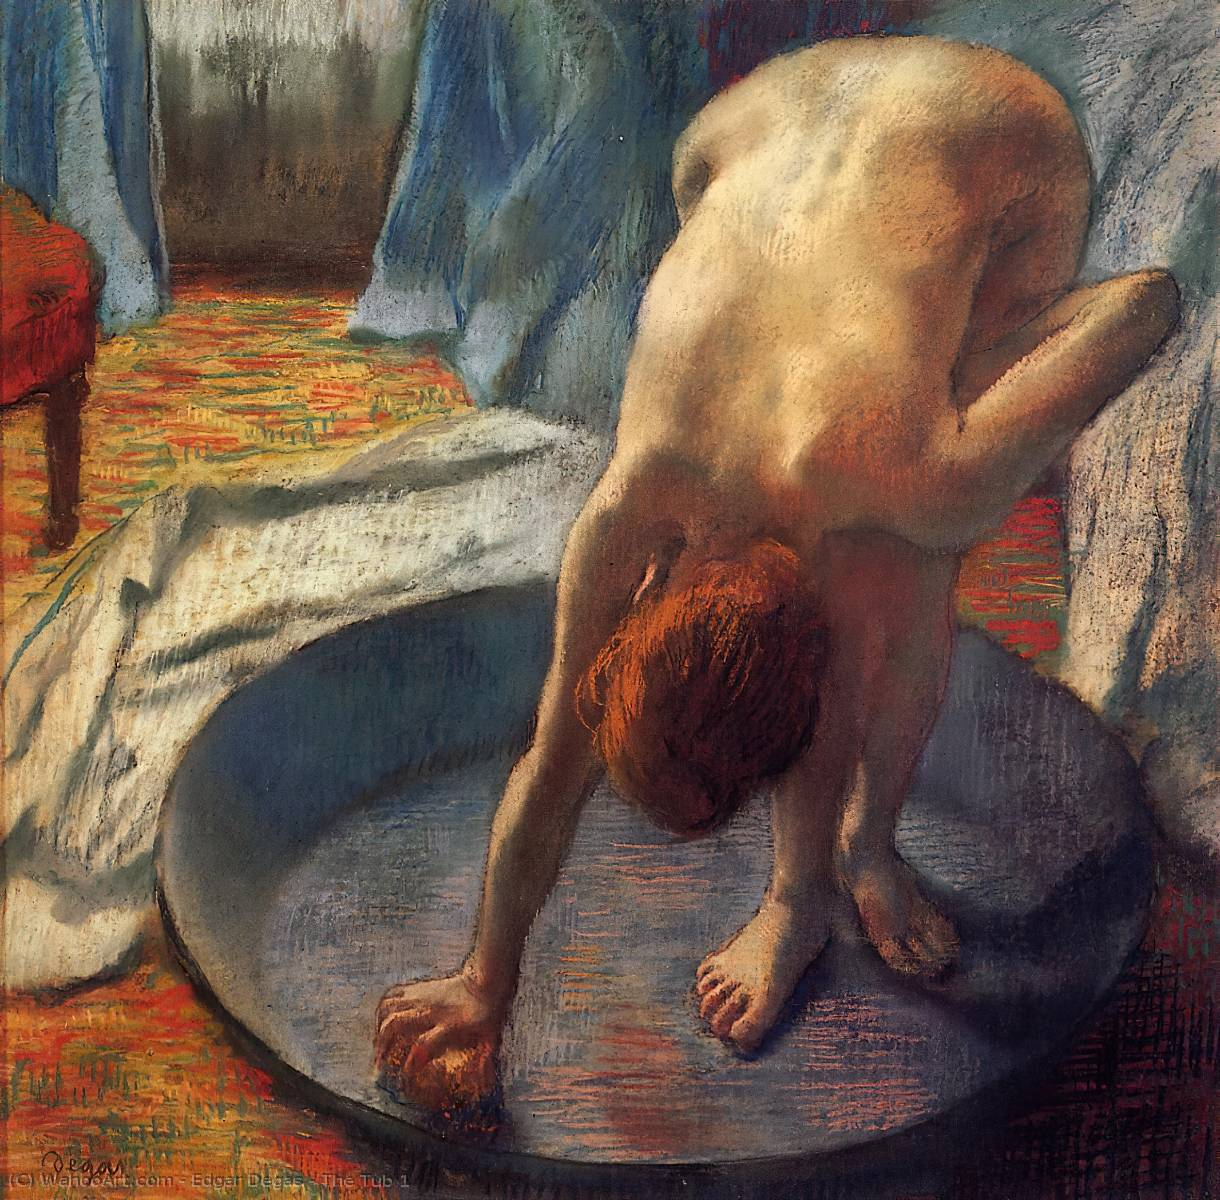 The Tub 1, 1886 by Edgar Degas  (order Fine Art oil painting Edgar Degas)